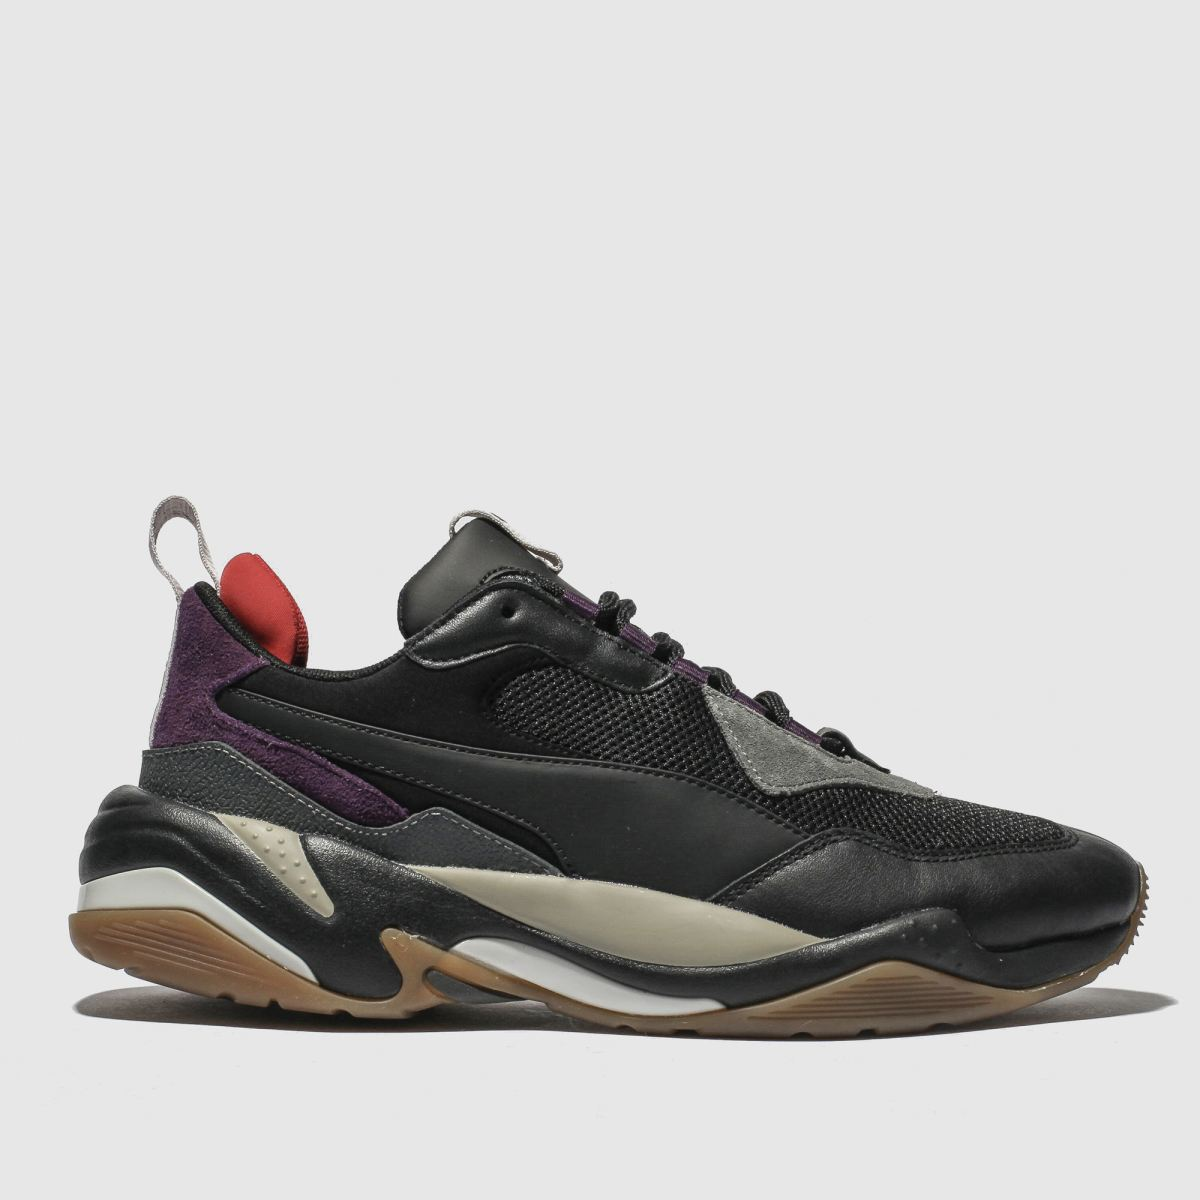 Puma Black & Purple Thunder Spectra Trainers